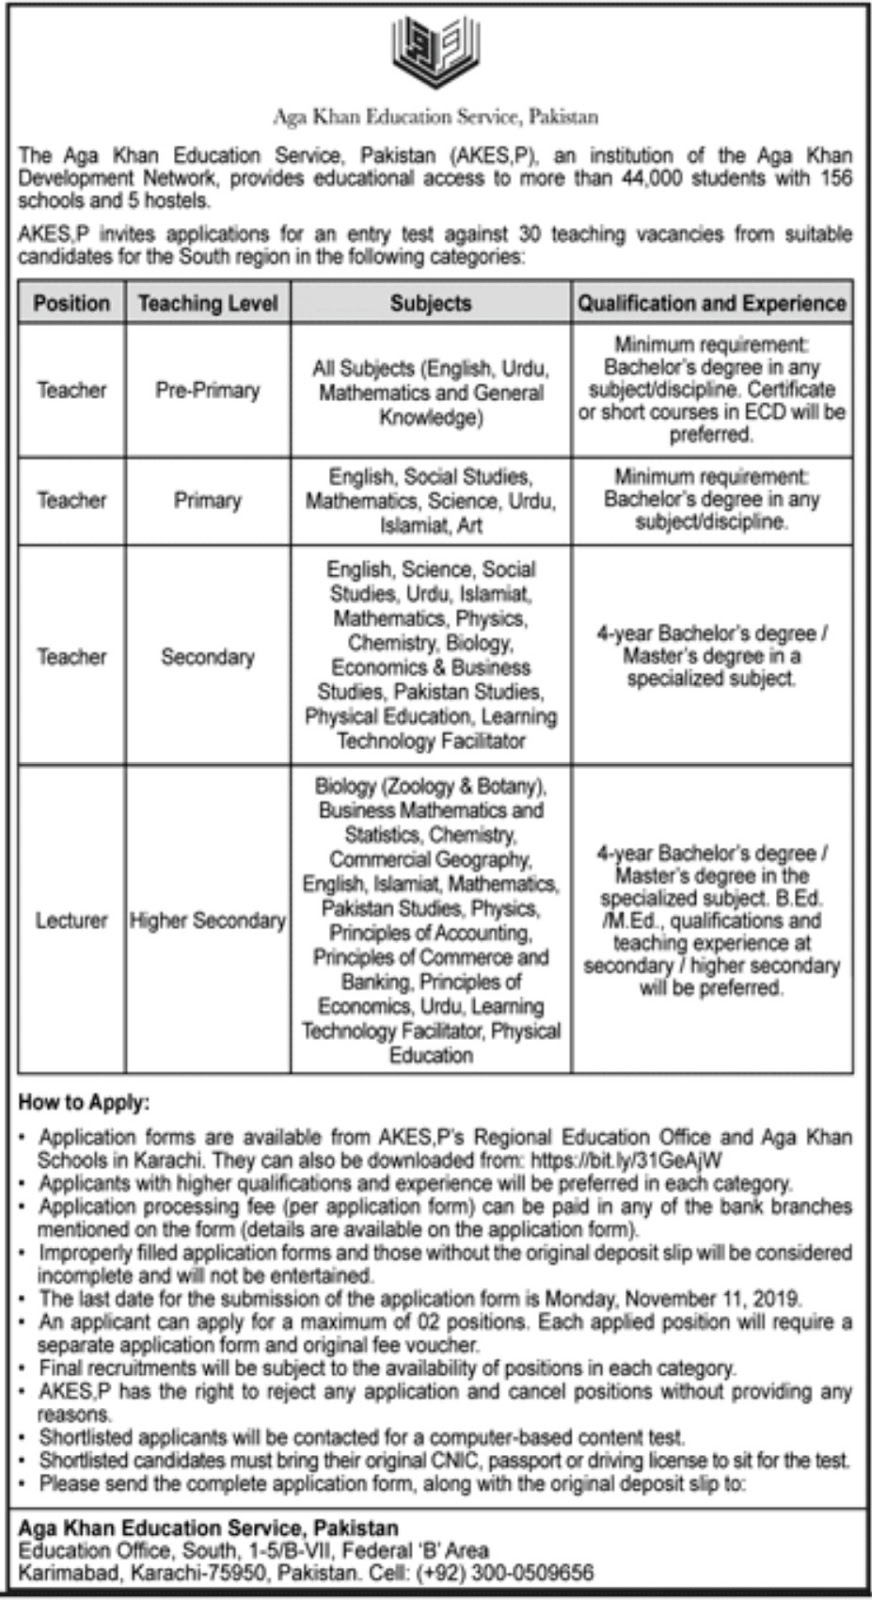 Agha Khan Education Service Pakistan Jobs 2019 Latest